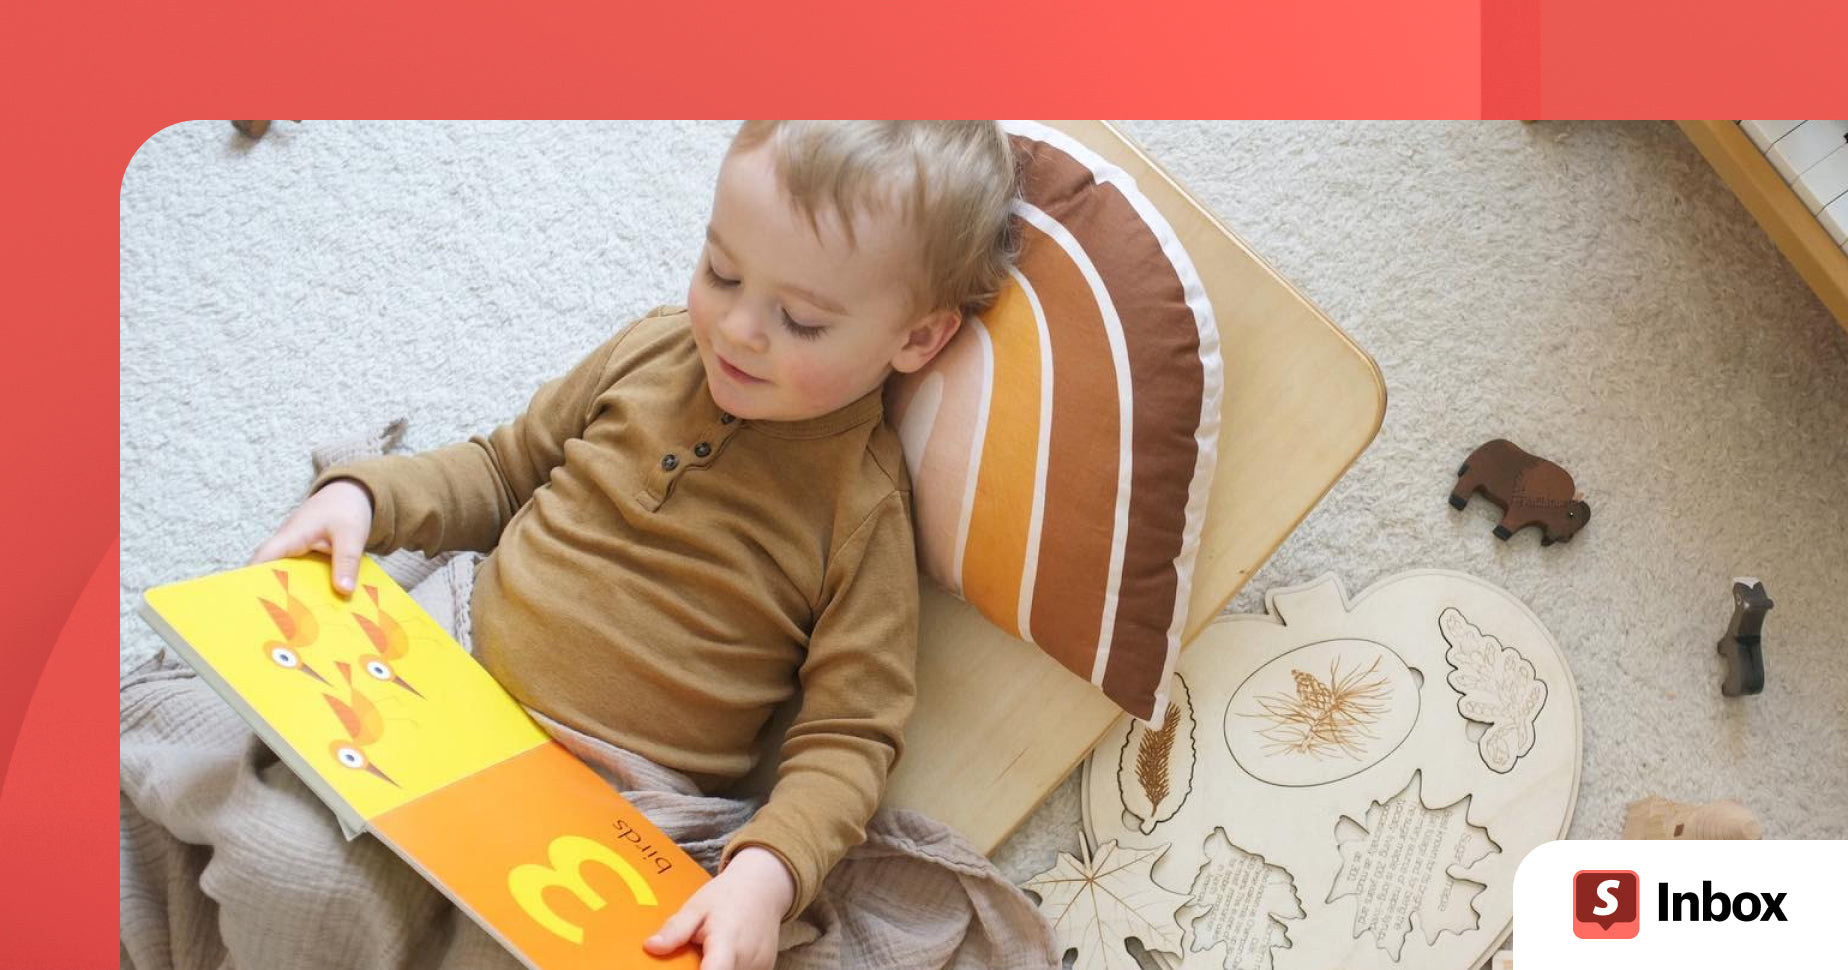 How Wood Wood Toys Uses Shopify Inbox to Differentiate and Win Sales